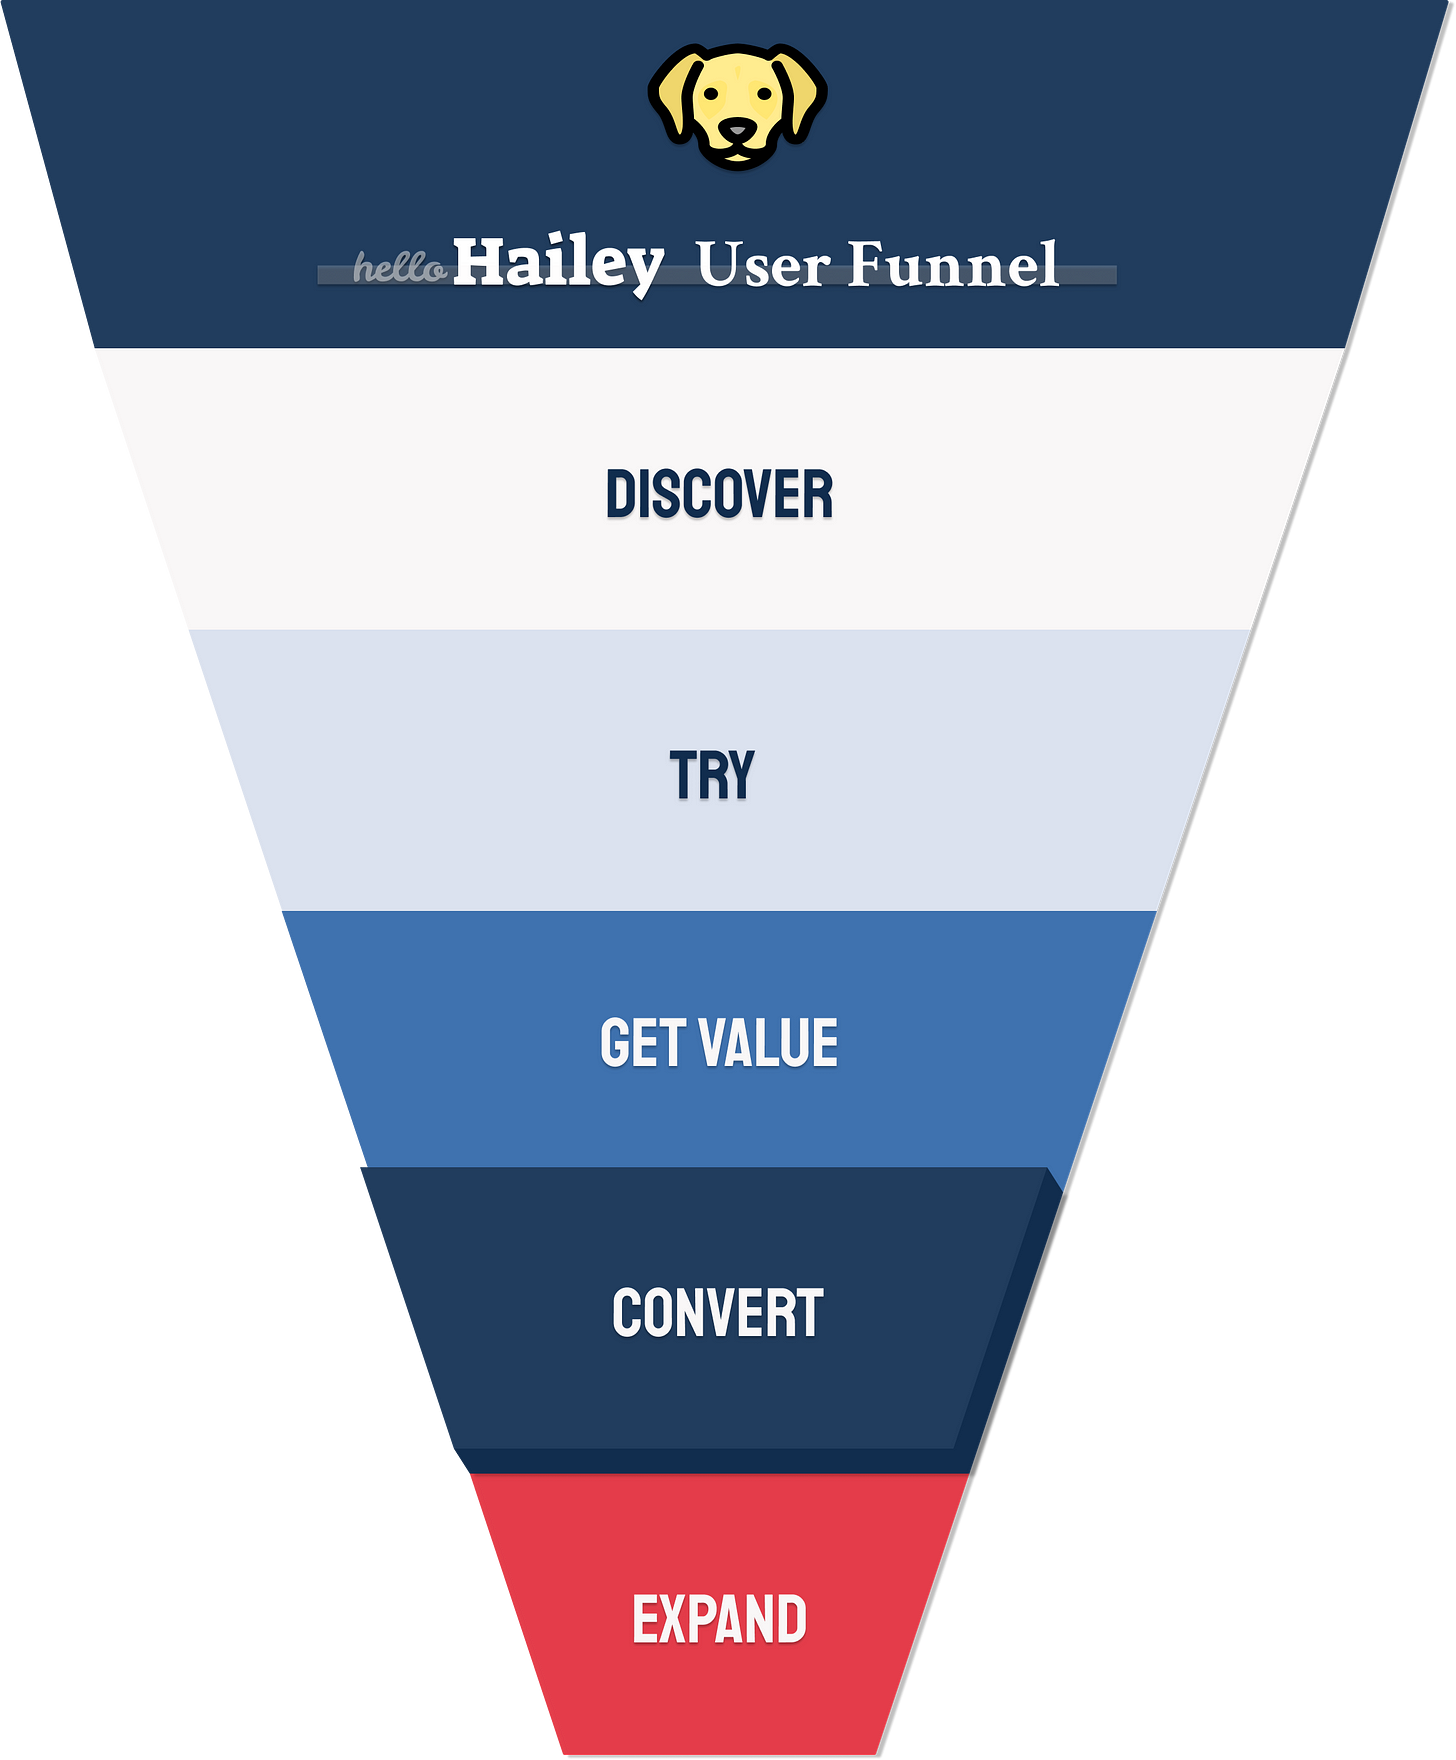 HelloHailey user acquisition funnel